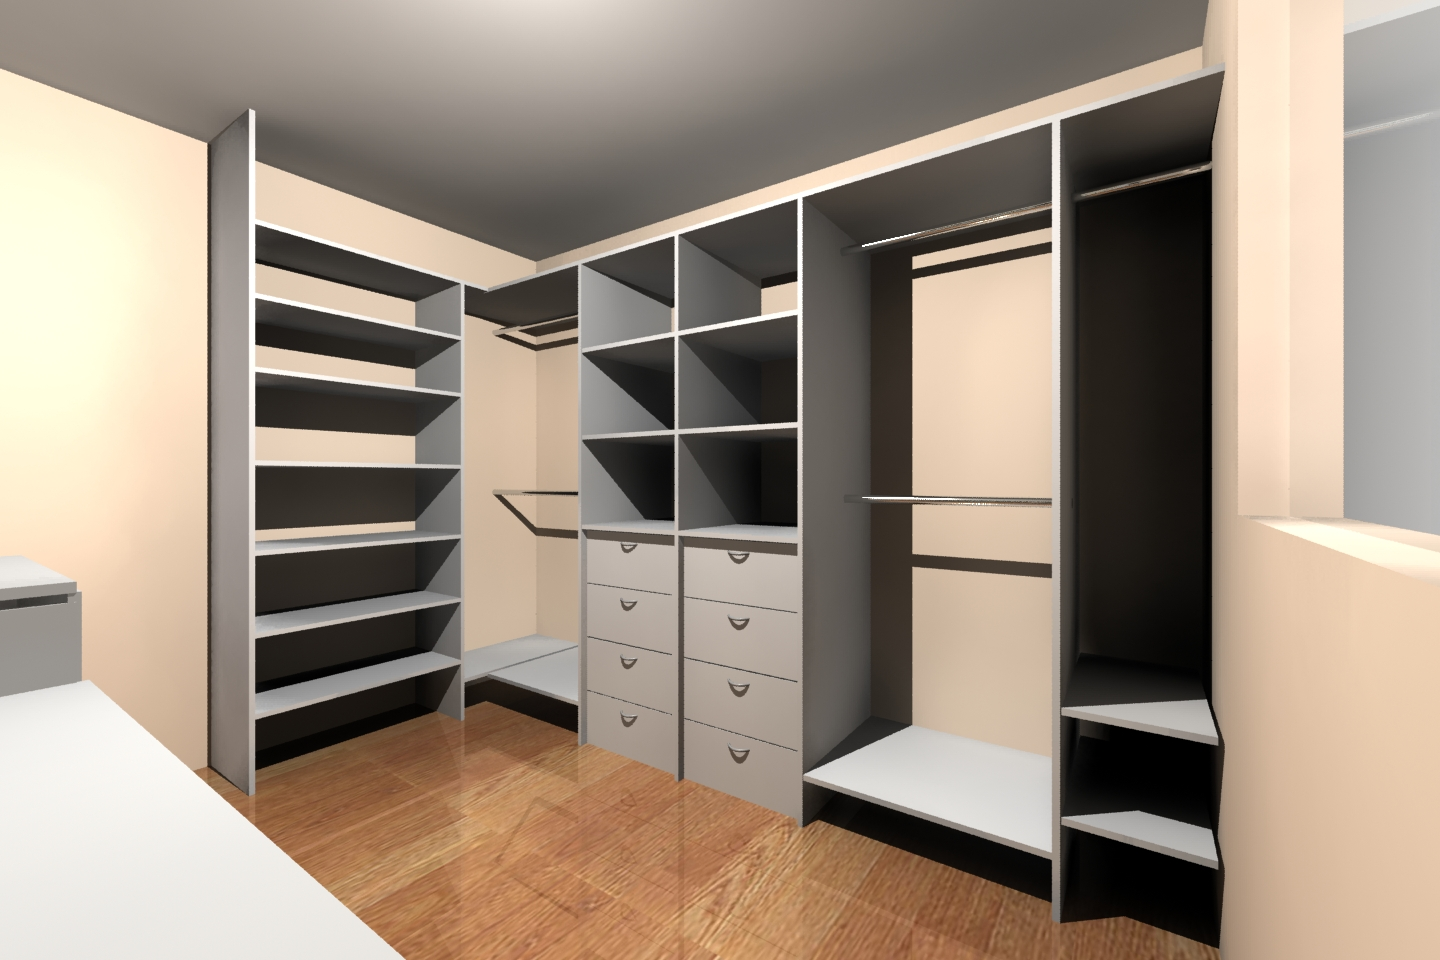 Aki Sus Muebles Akire Design: Walking Closet